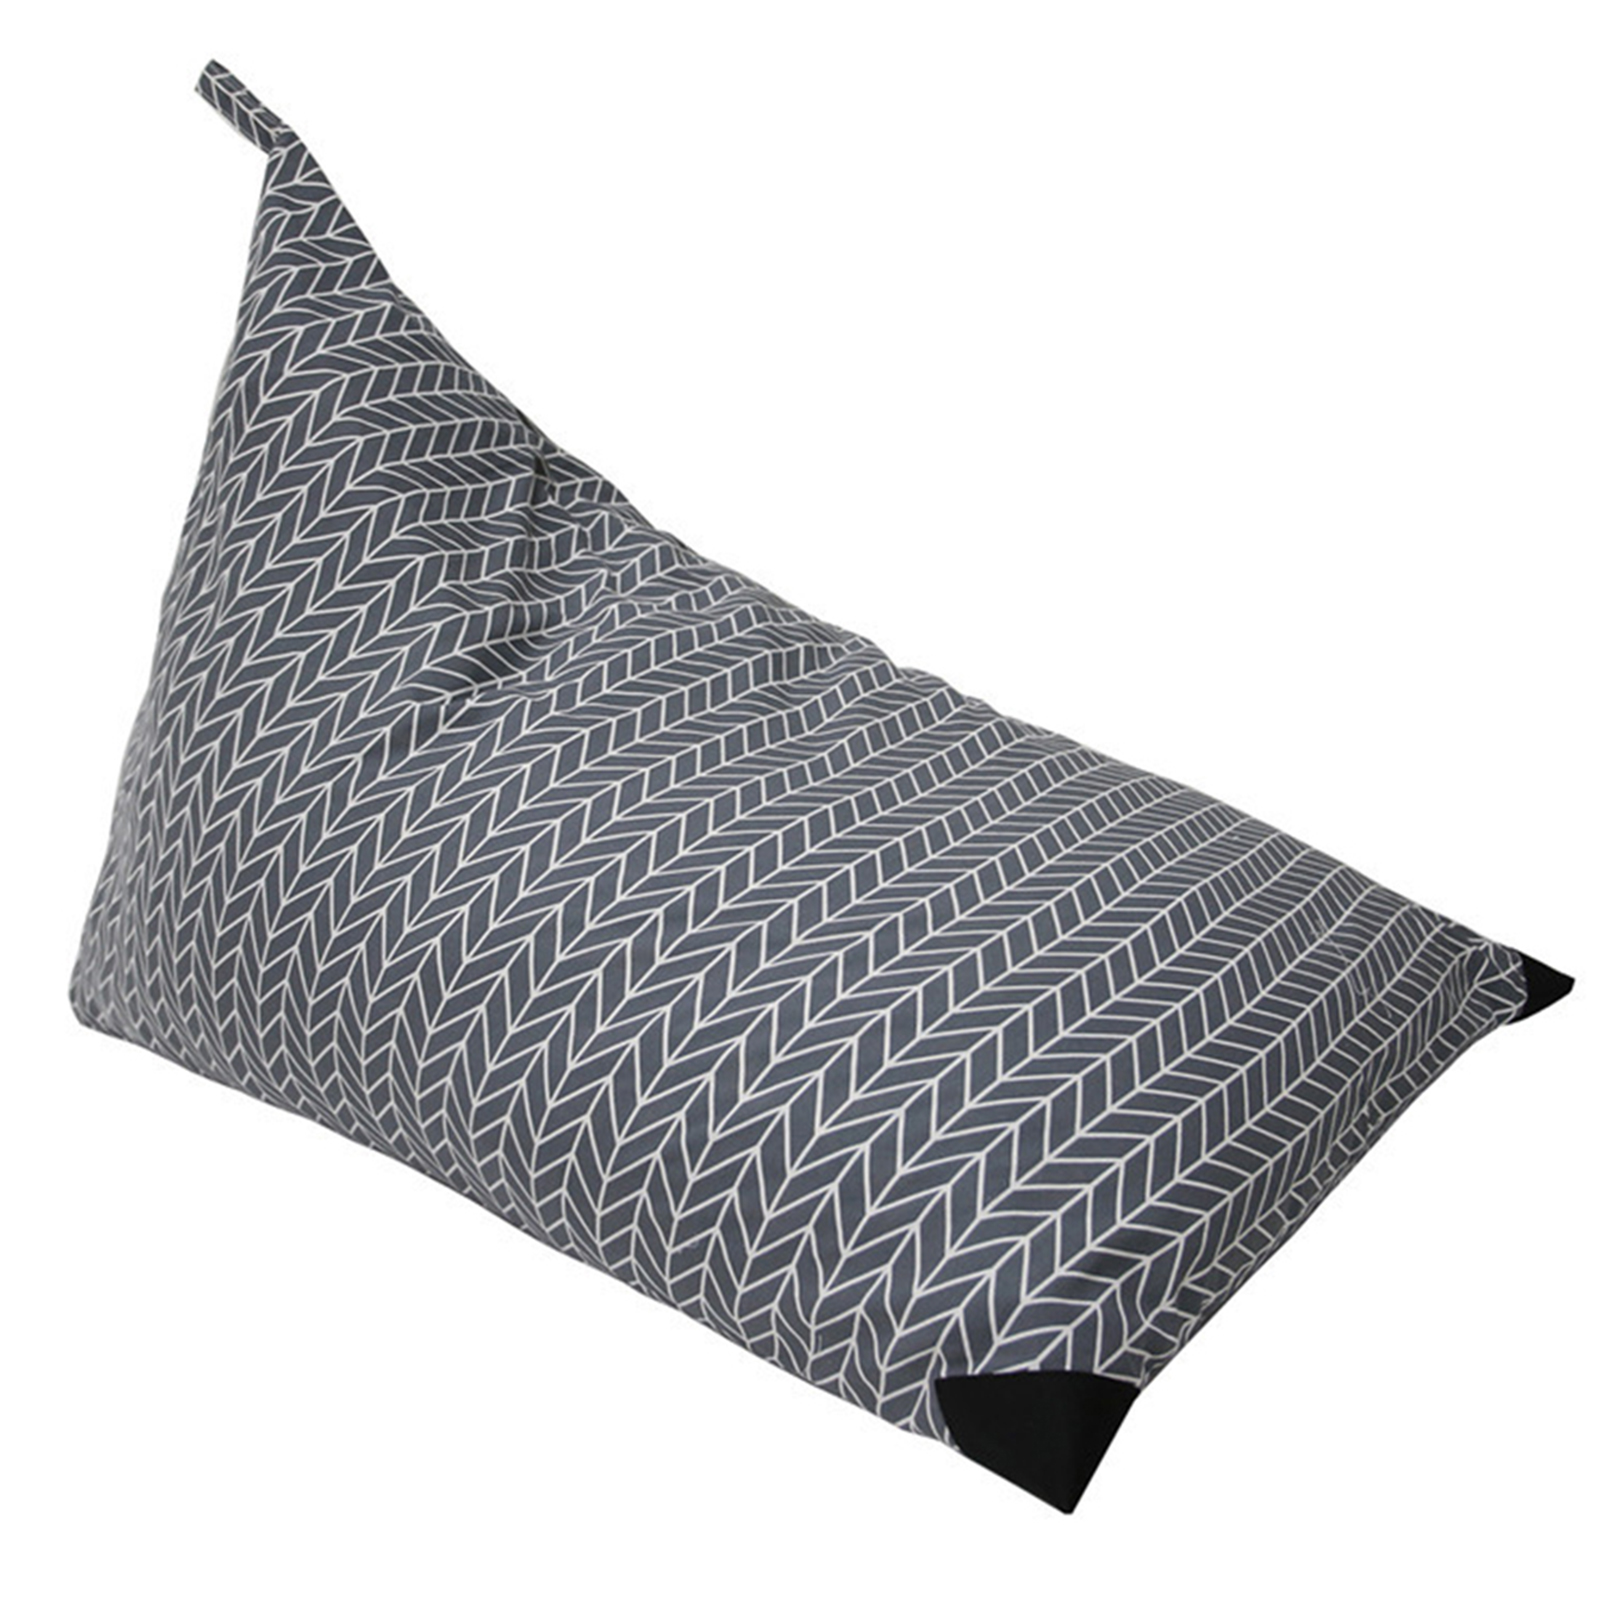 Kid Room Sofa Chair Cover Large Capacity Storage Bean Bag For Stuffed Animal Dustproof Triangle Canvas Bedroom Toy Organizer